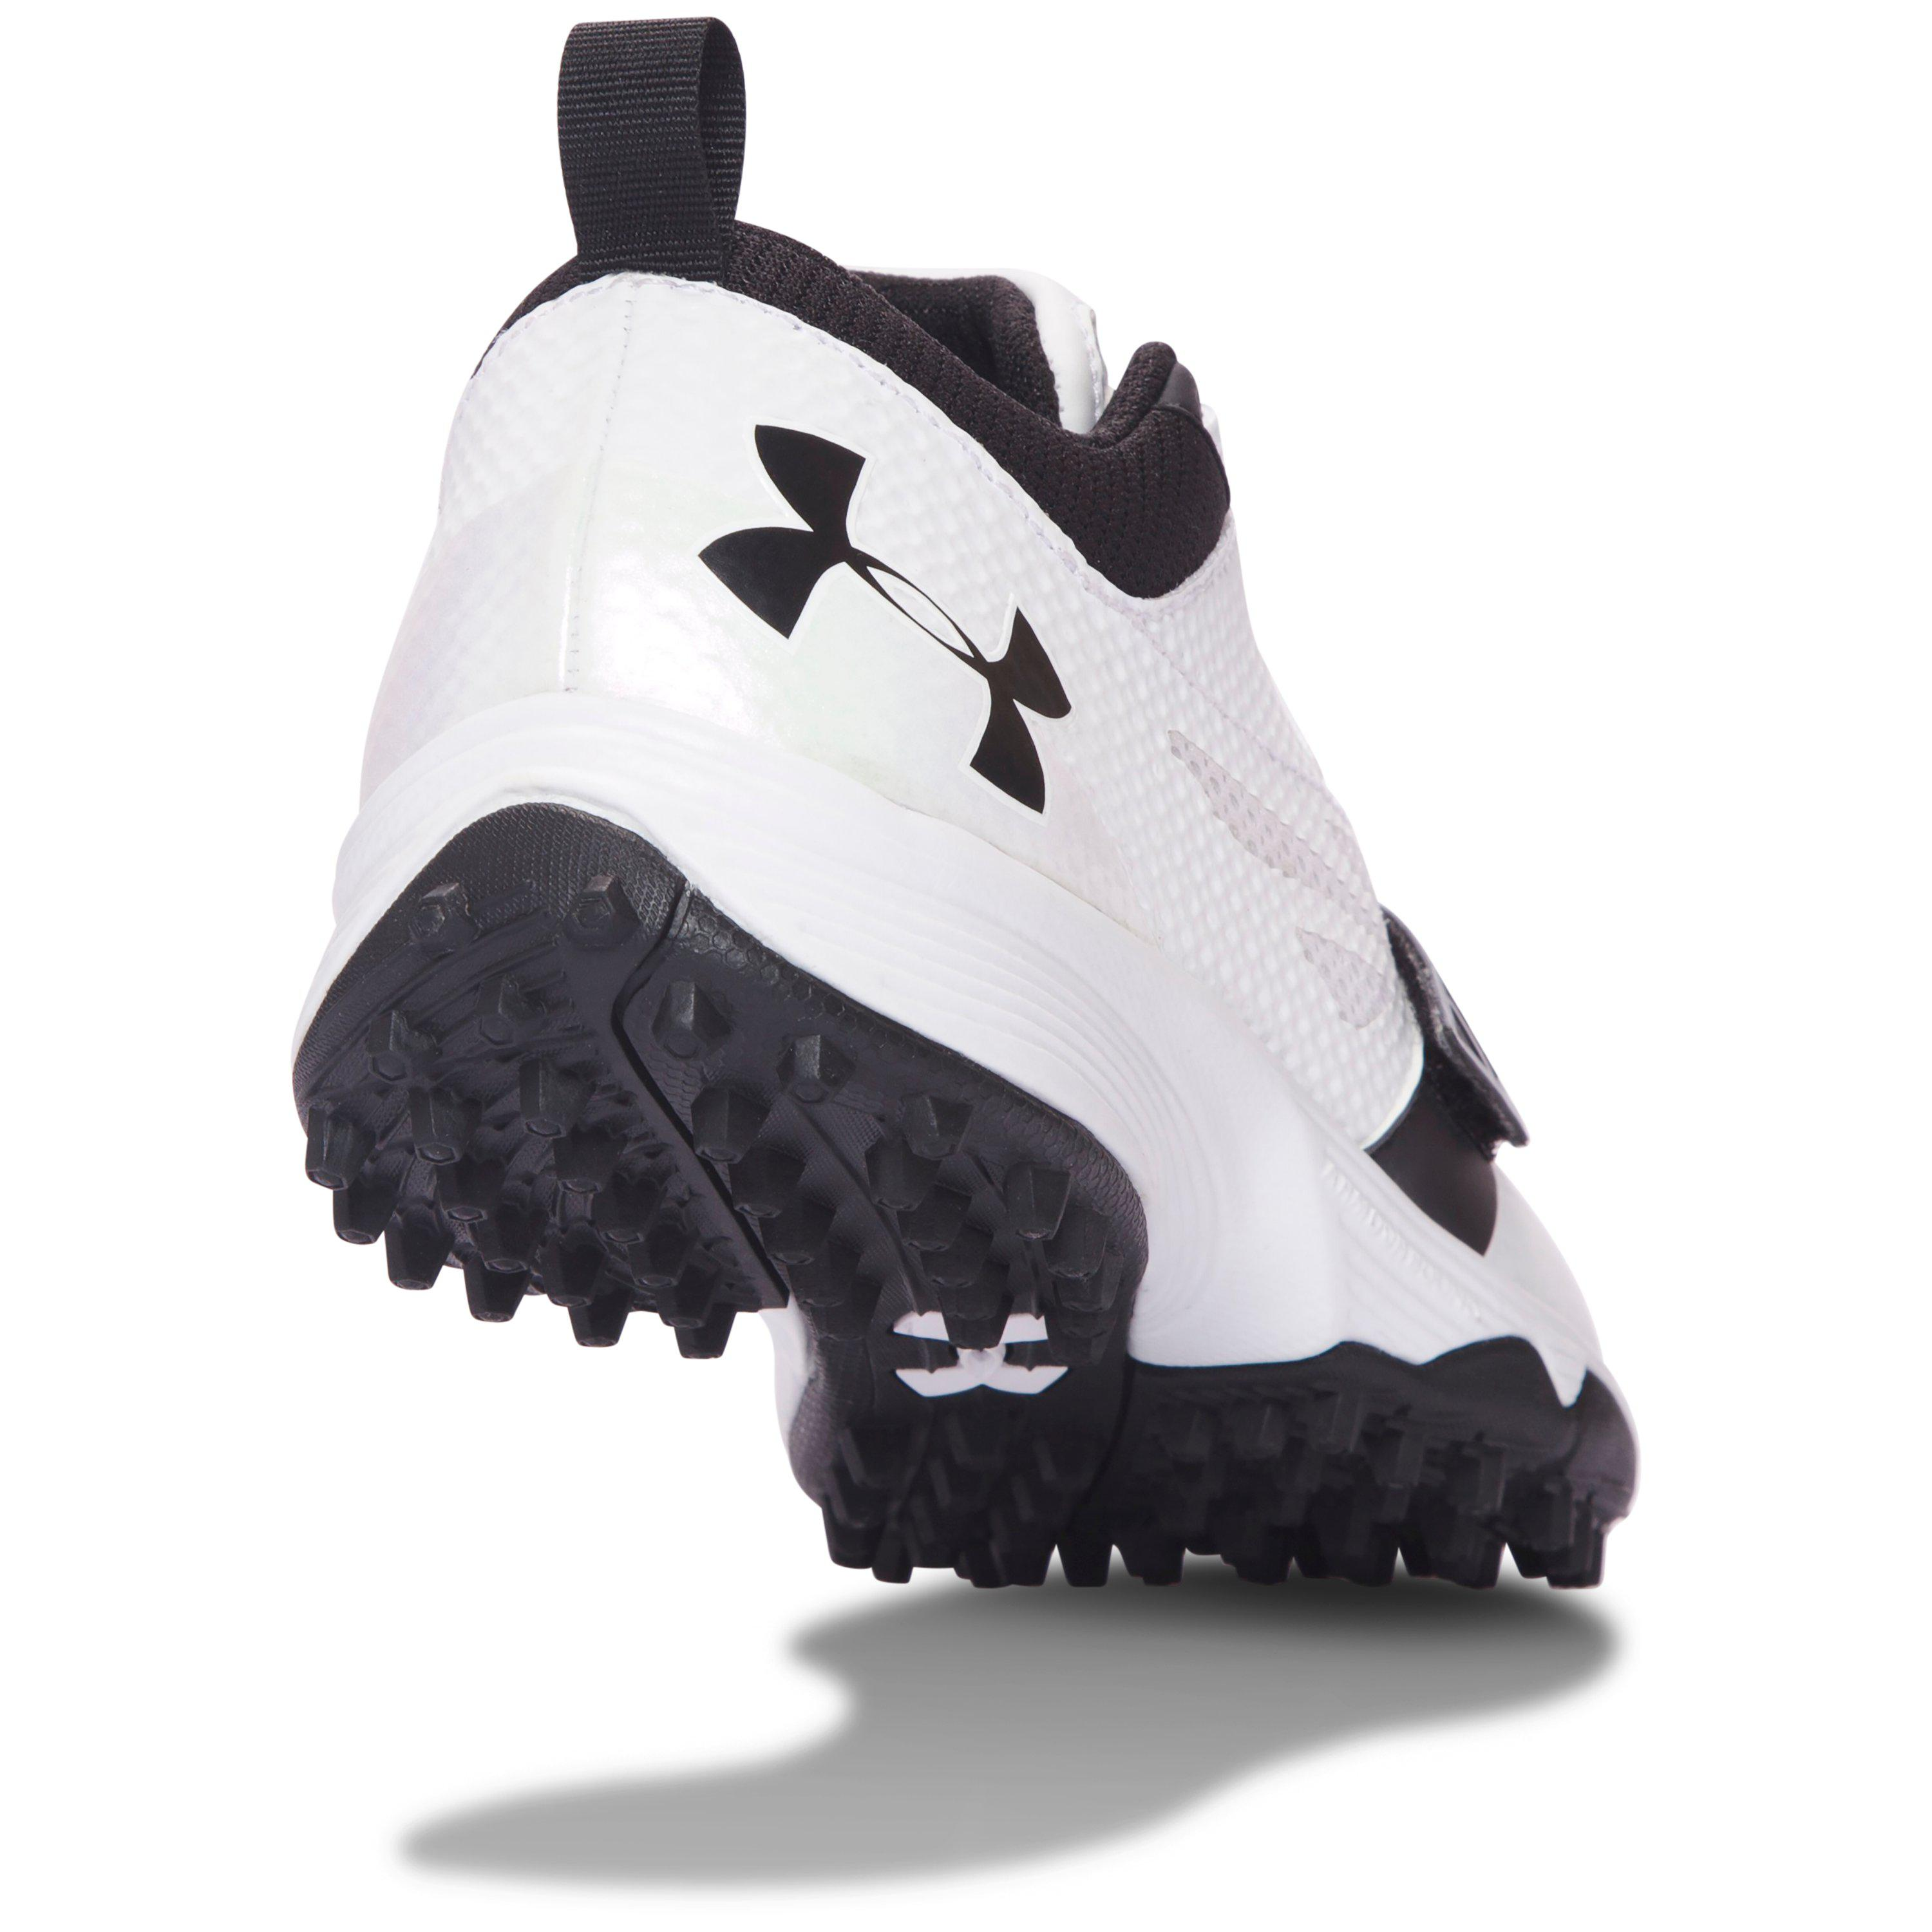 985616105512 Under Armour Women's Ua Finisher Turf Lacrosse Cleats - Lyst